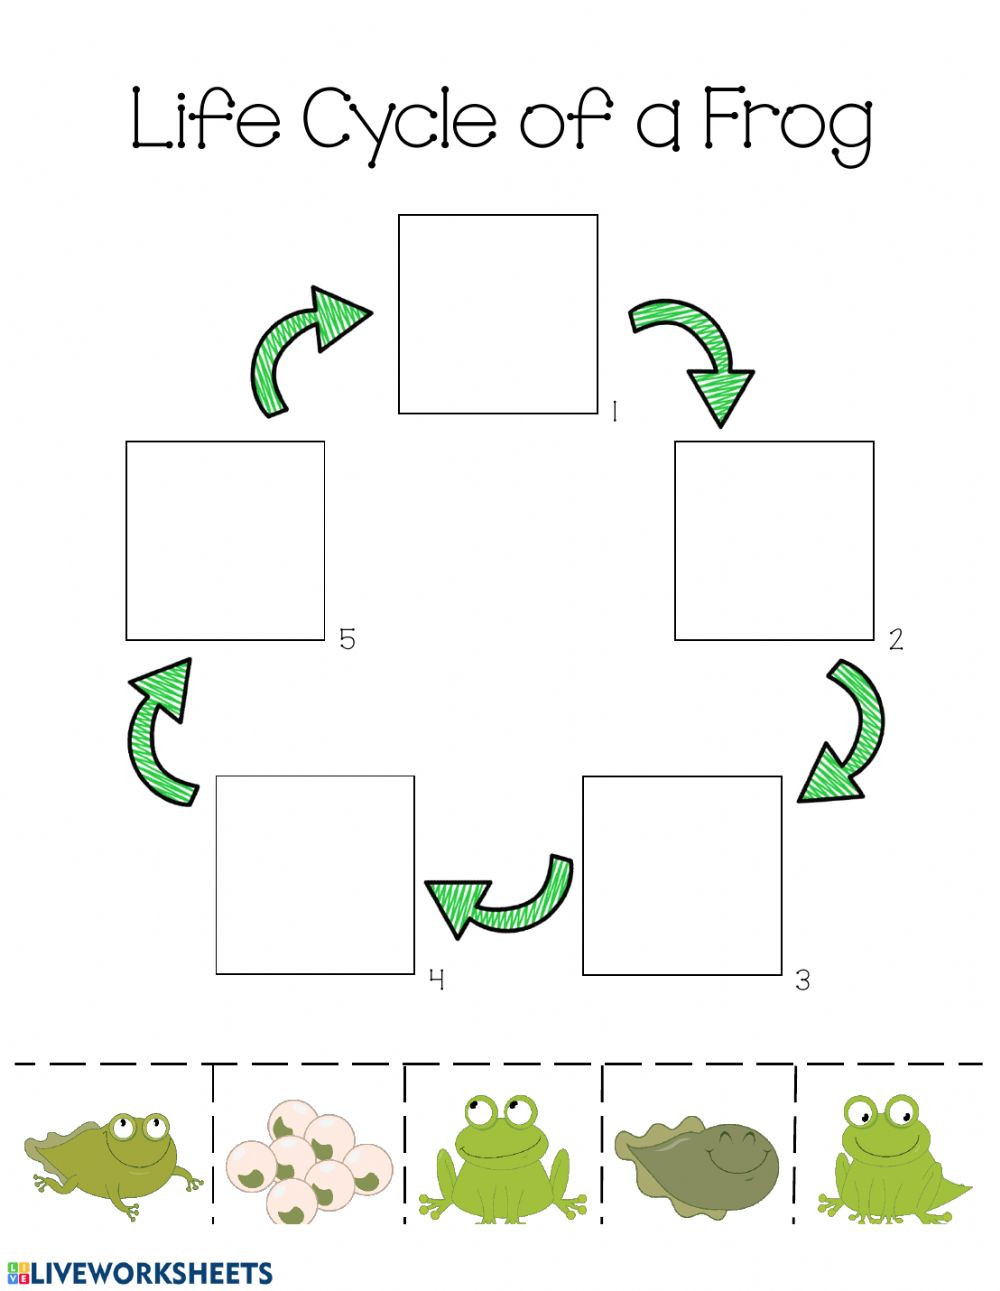 Frog Life Cycle Worksheet Life Cycle Of A Frog Life Cycle Worksheet